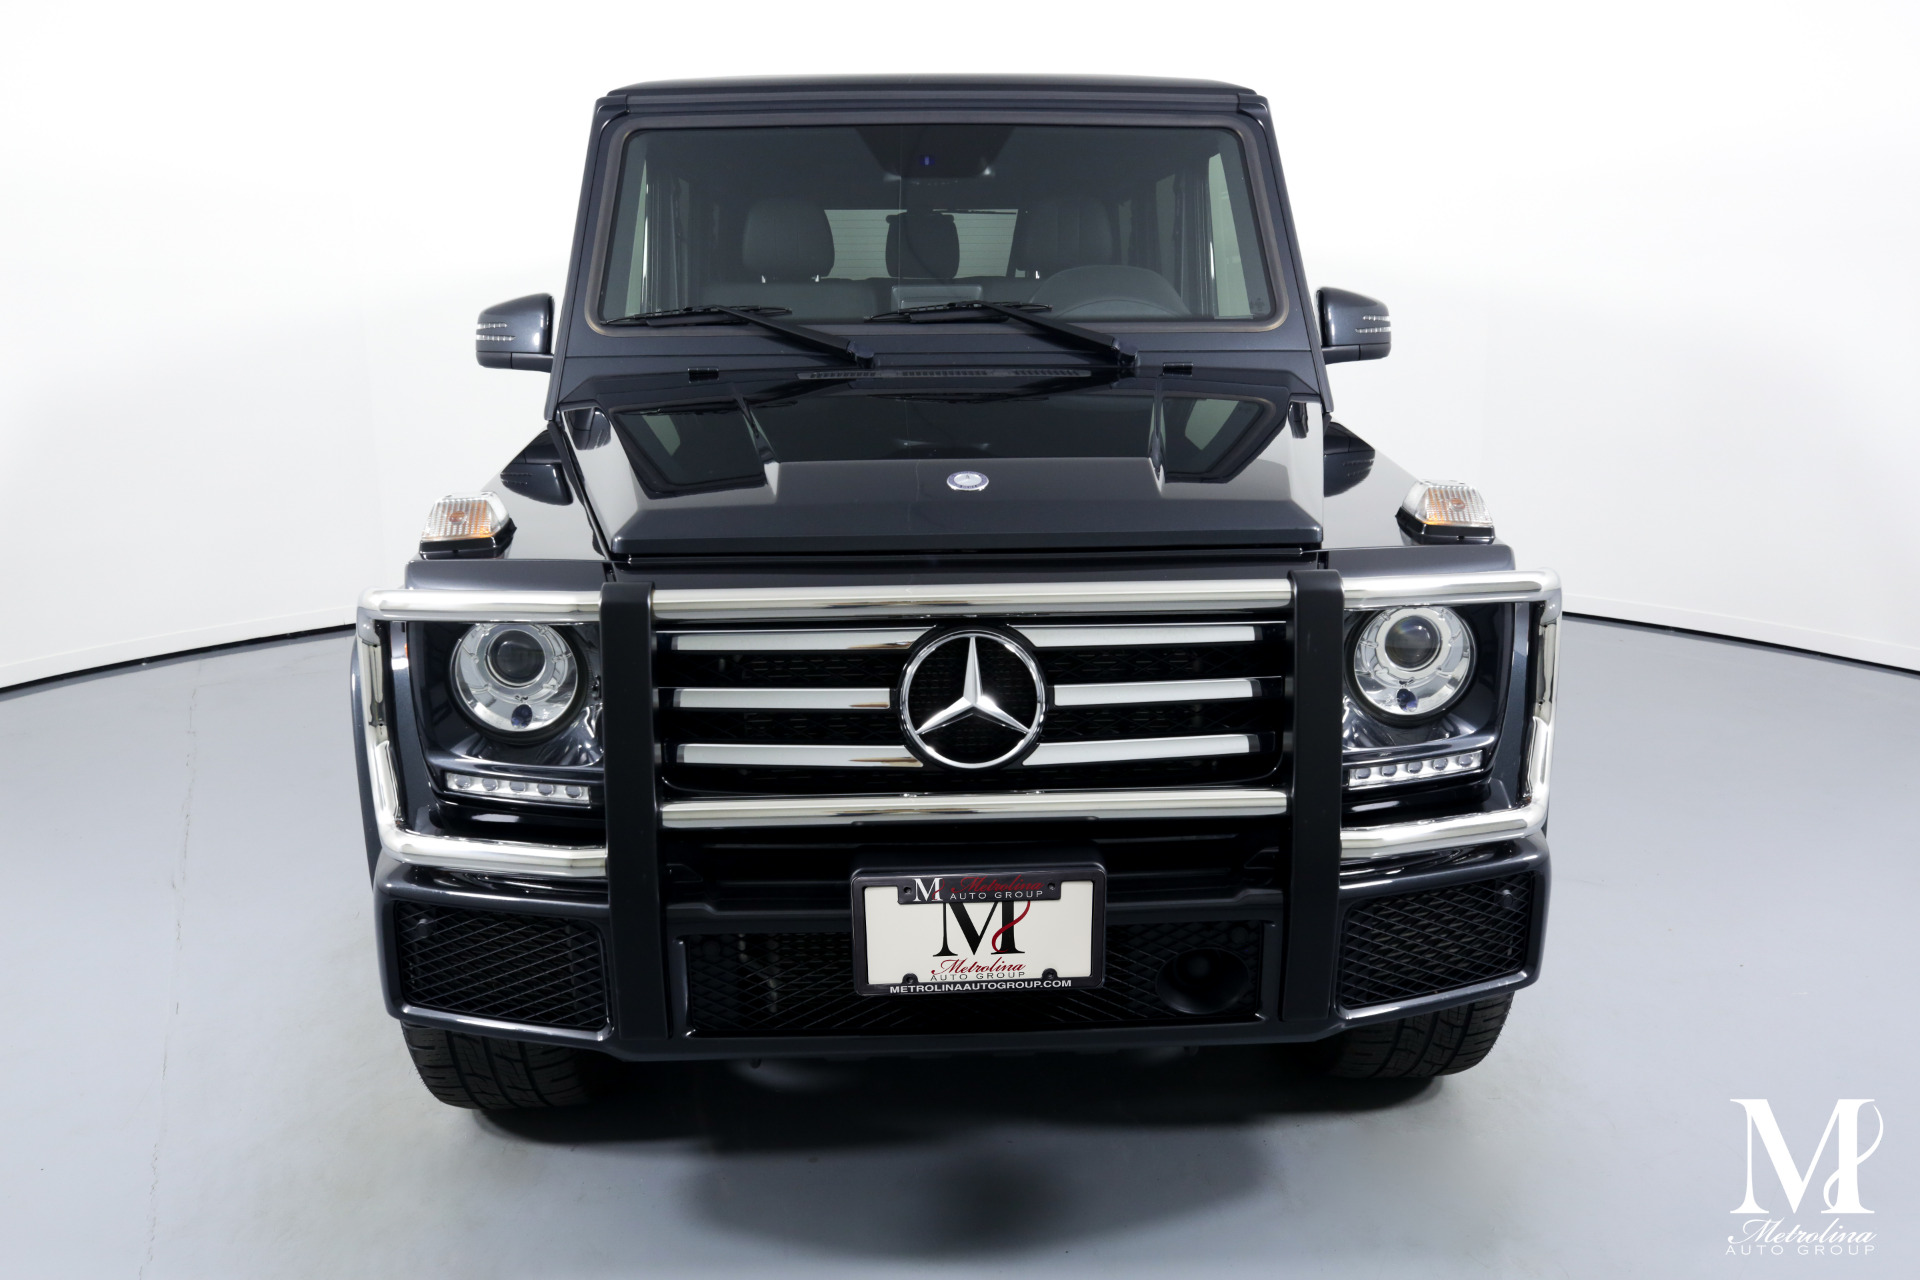 Used 2017 Mercedes-Benz G-Class G 550 for sale $78,456 at Metrolina Auto Group in Charlotte NC 28217 - 3